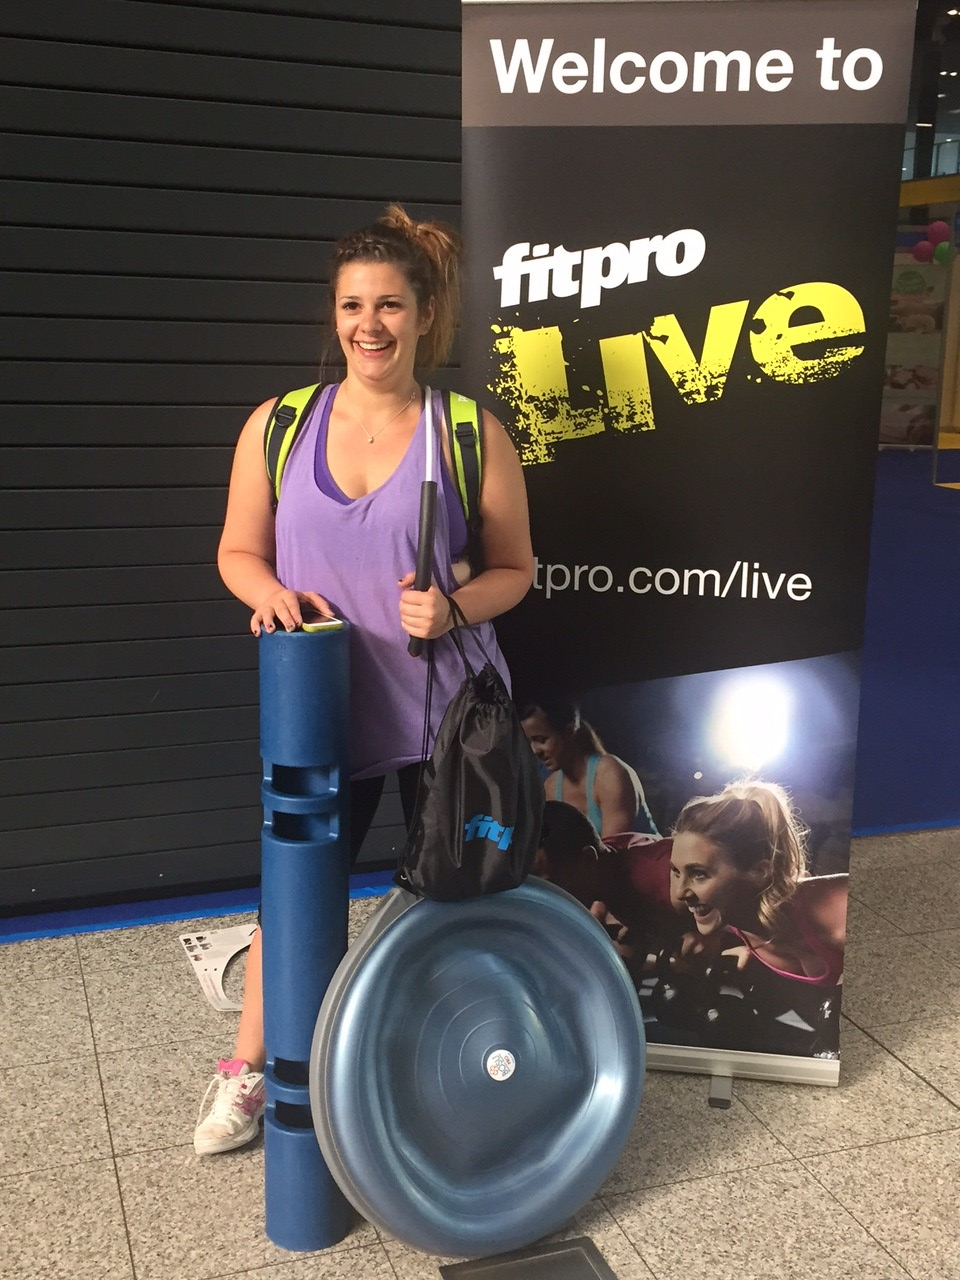 Jen with her winnings! Walking out the proud owner of a ViPR and a Bosu ball!